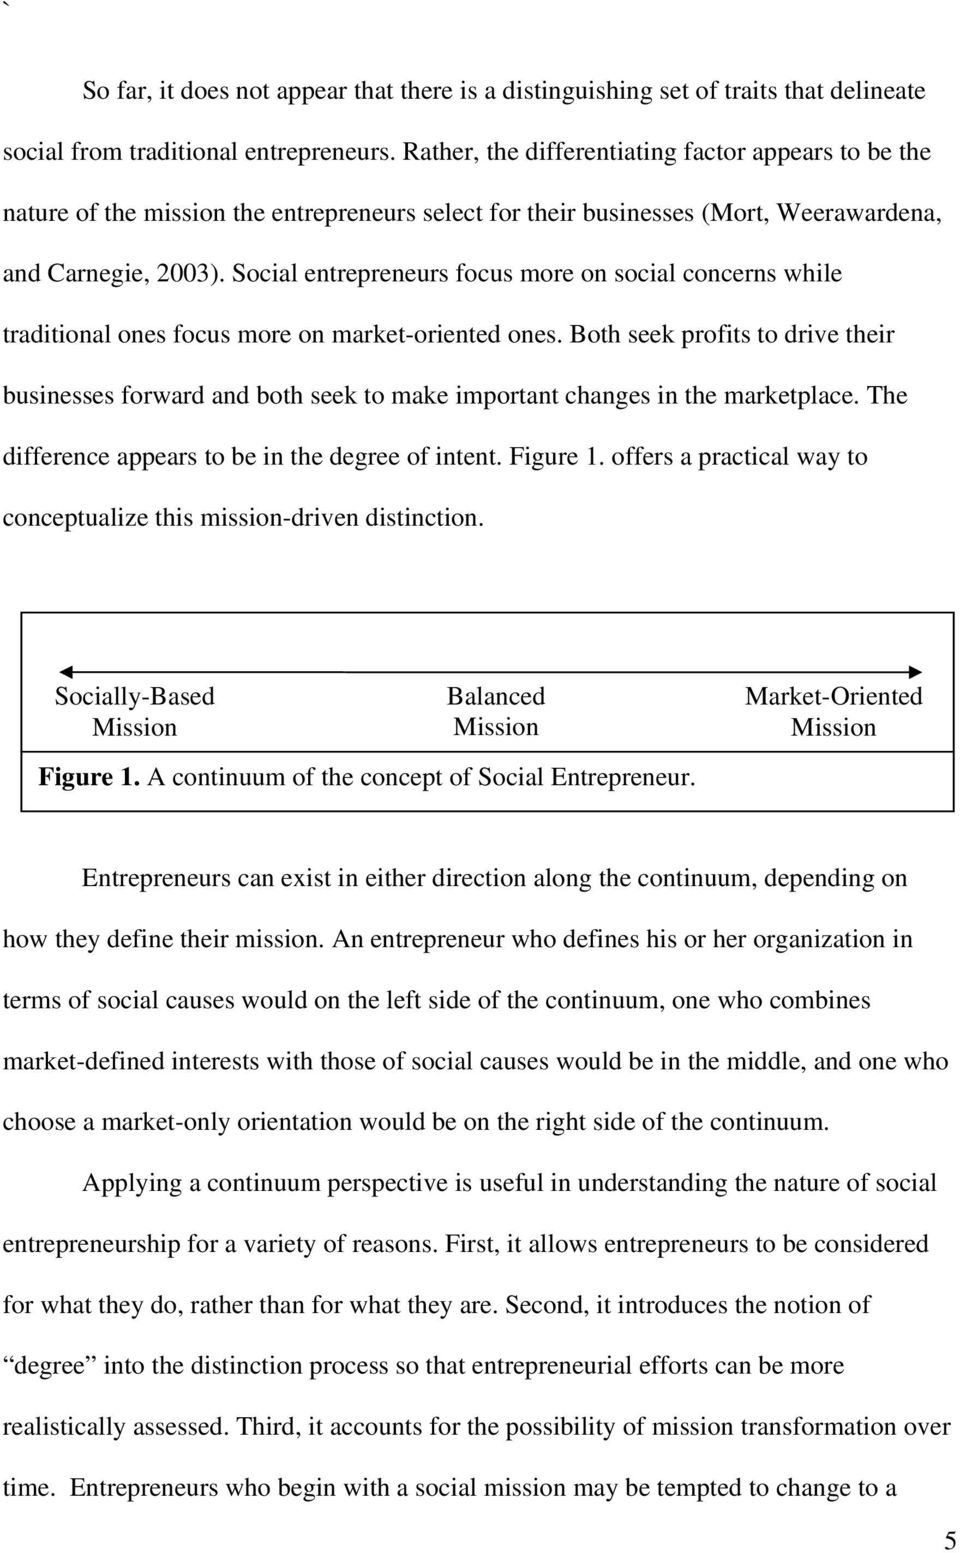 Social entrepreneurs focus more on social concerns while traditional ones focus more on market-oriented ones.